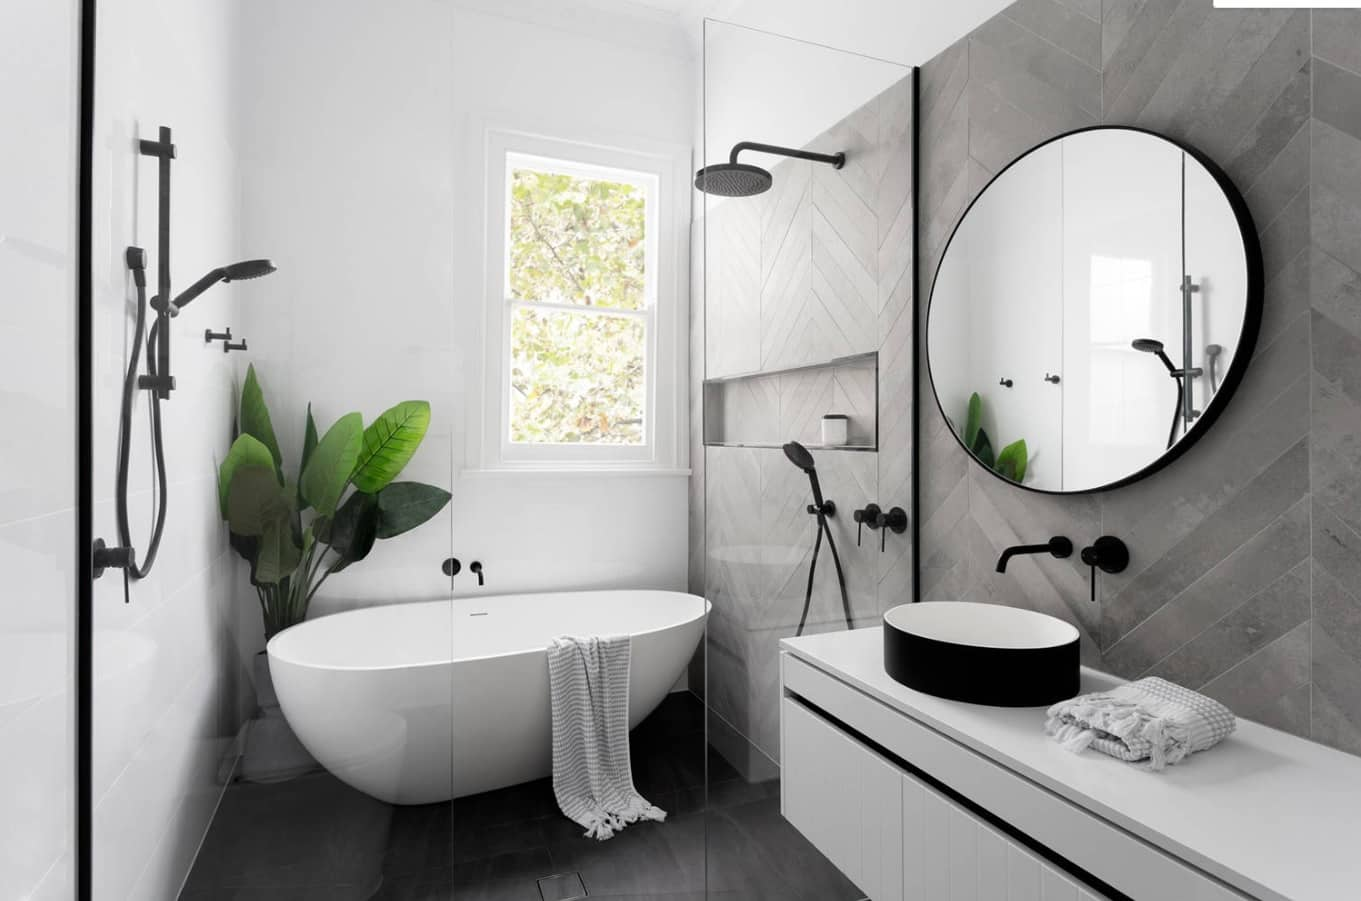 Great streamlined bathroom concept with greenery